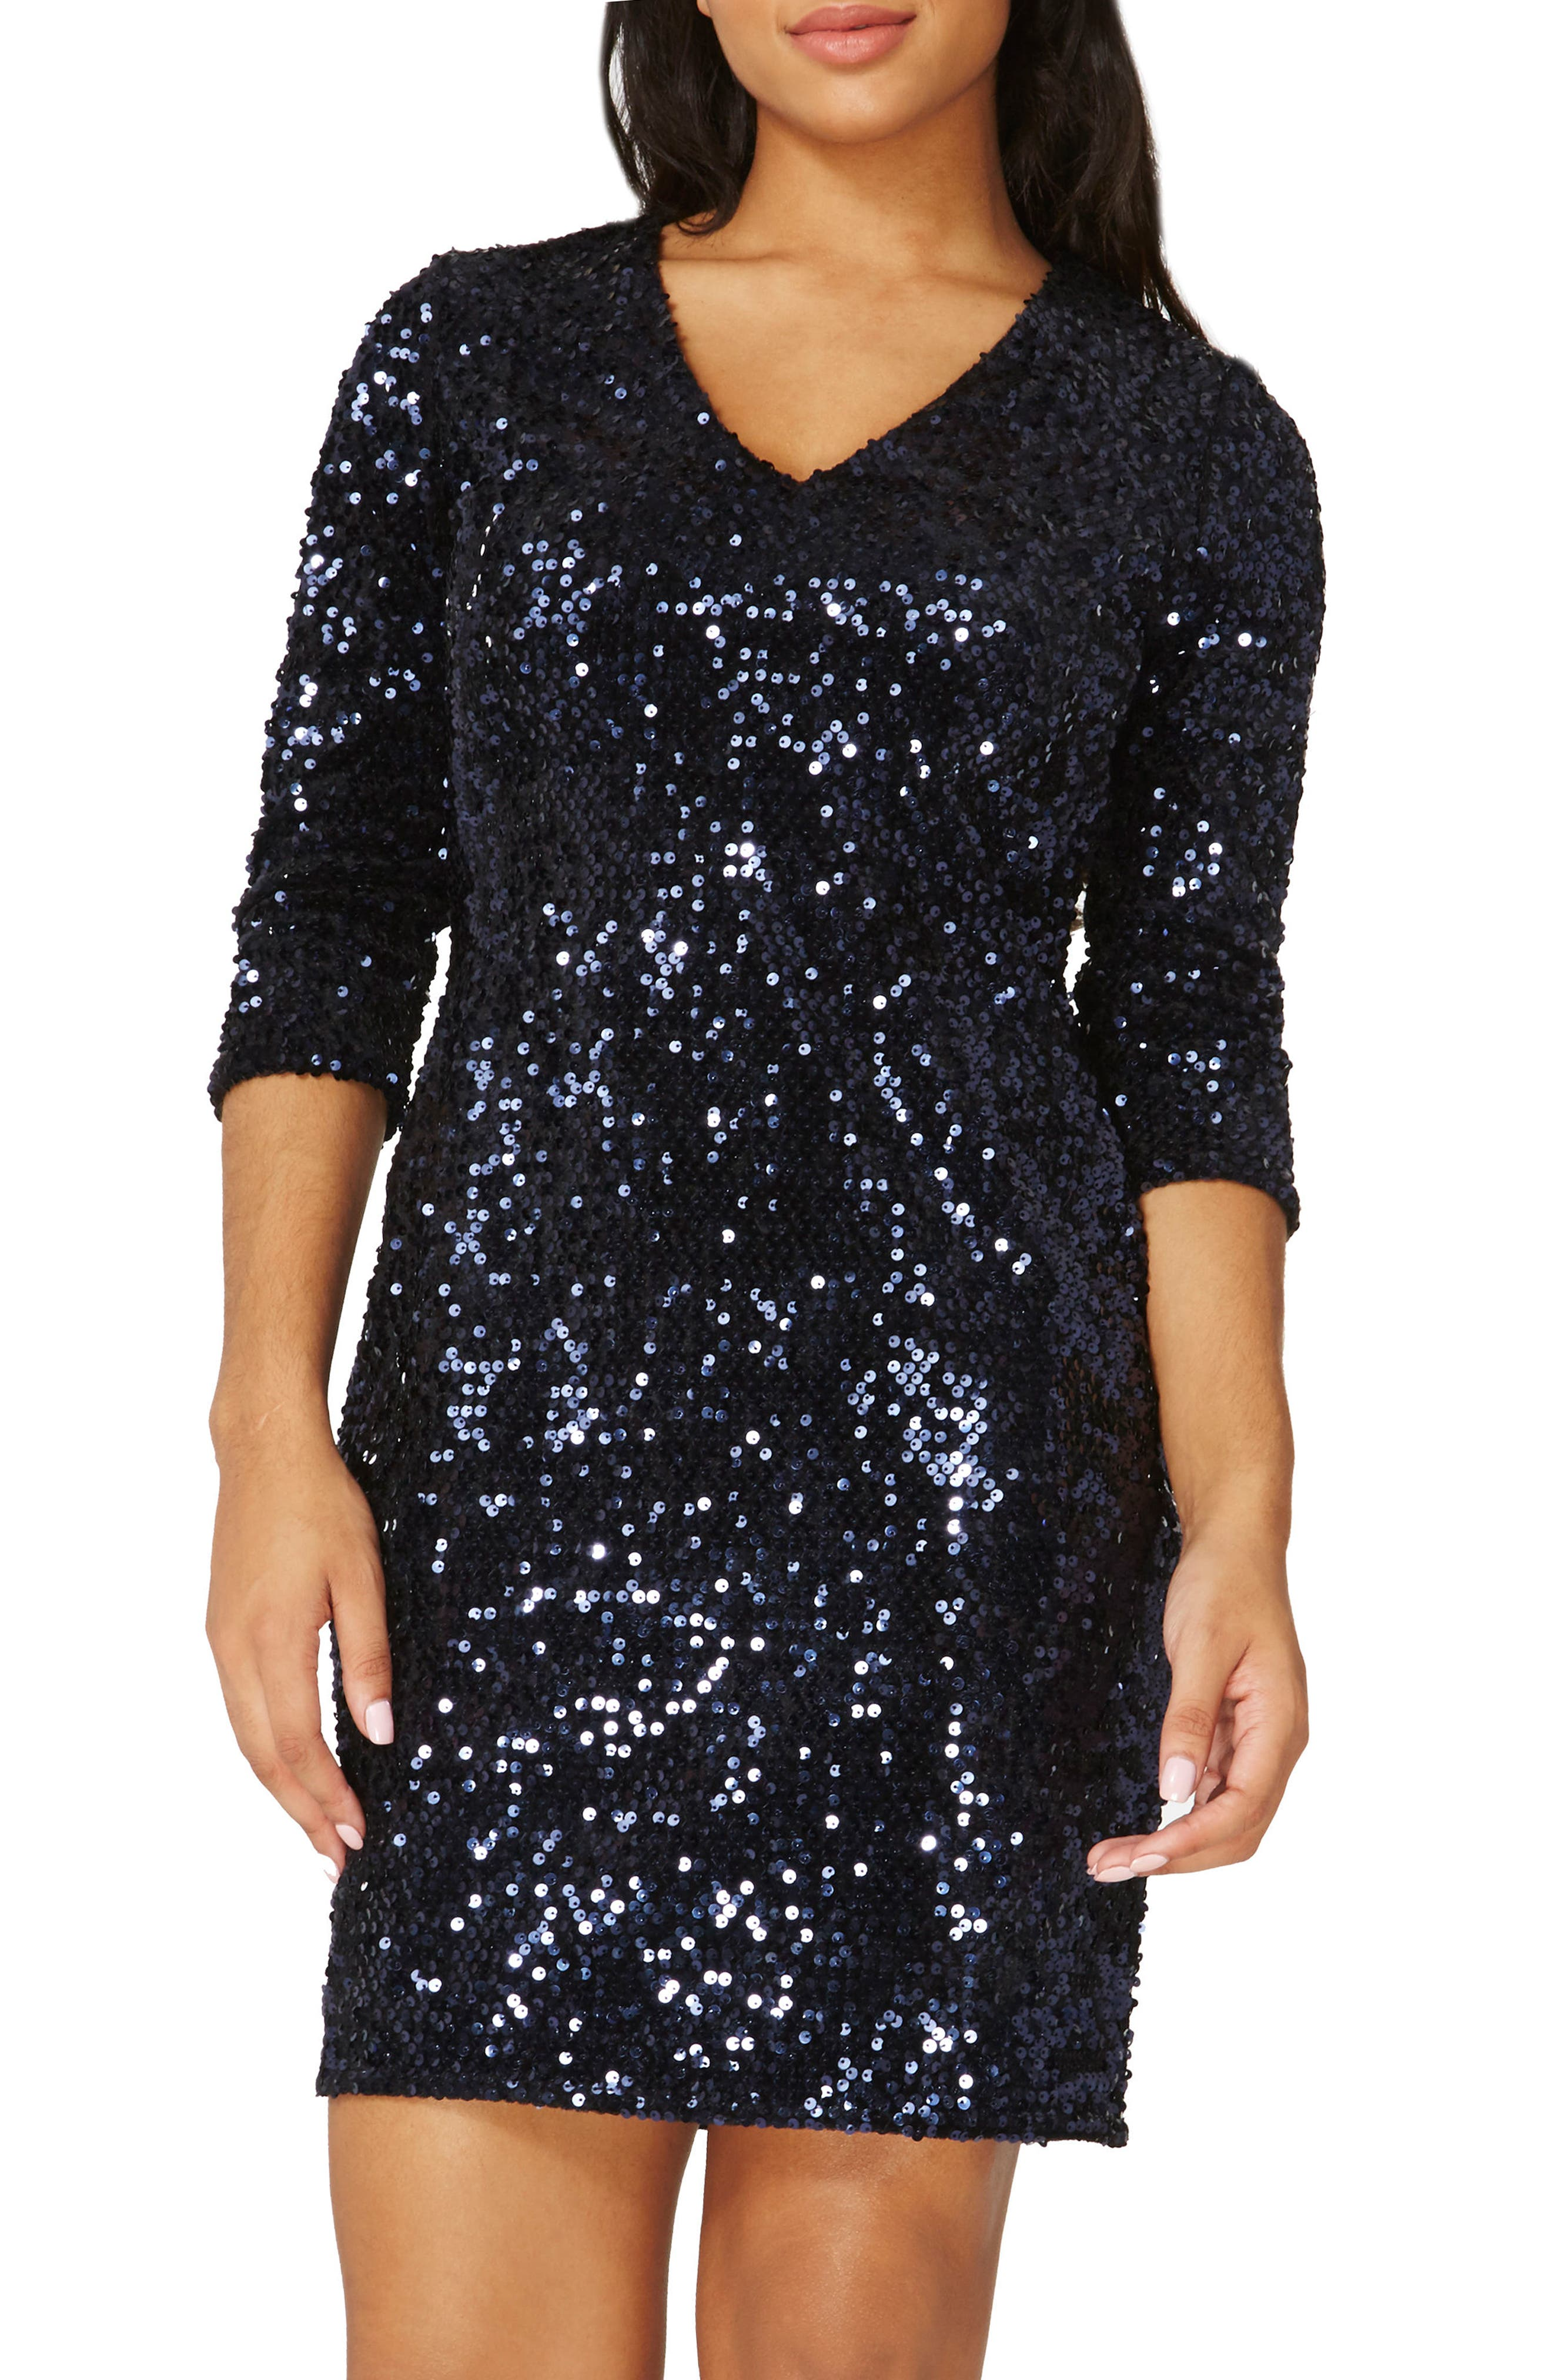 Alternate Image 1 Selected - Dorothy Perkins Sequin Body-Con Dress